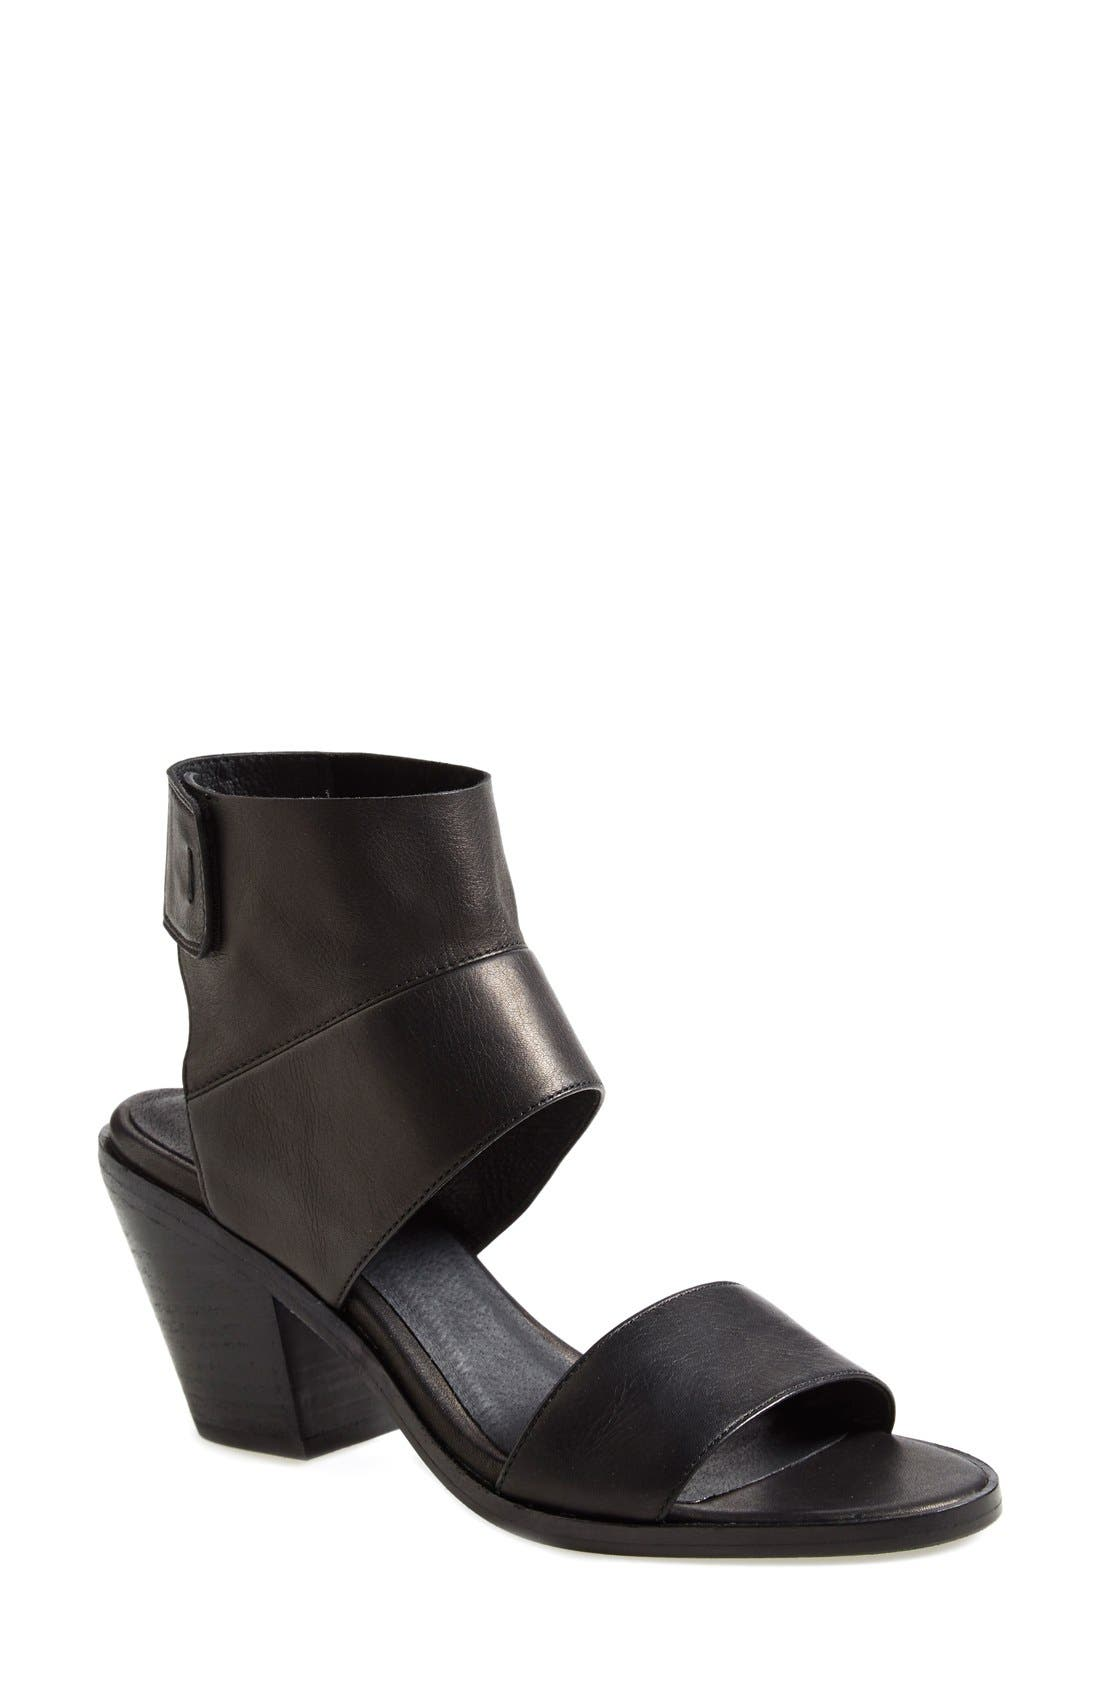 'Art' Tumbled Leather Ankle Cuff Sandal,                         Main,                         color, Black